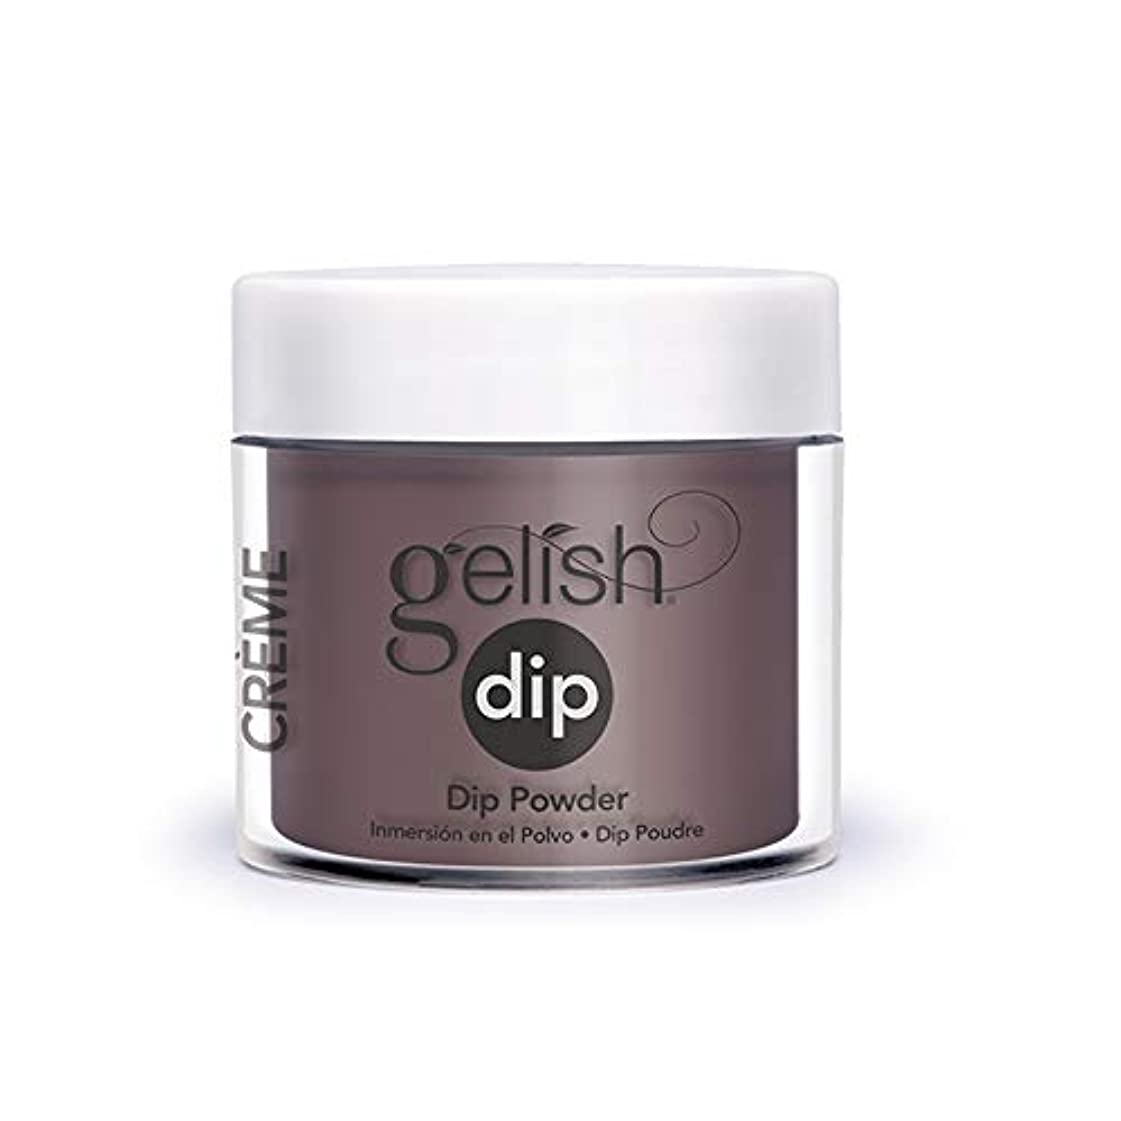 展示会米ドル地下室Harmony Gelish - Acrylic Dip Powder - On the Fringe - 23g / 0.8oz